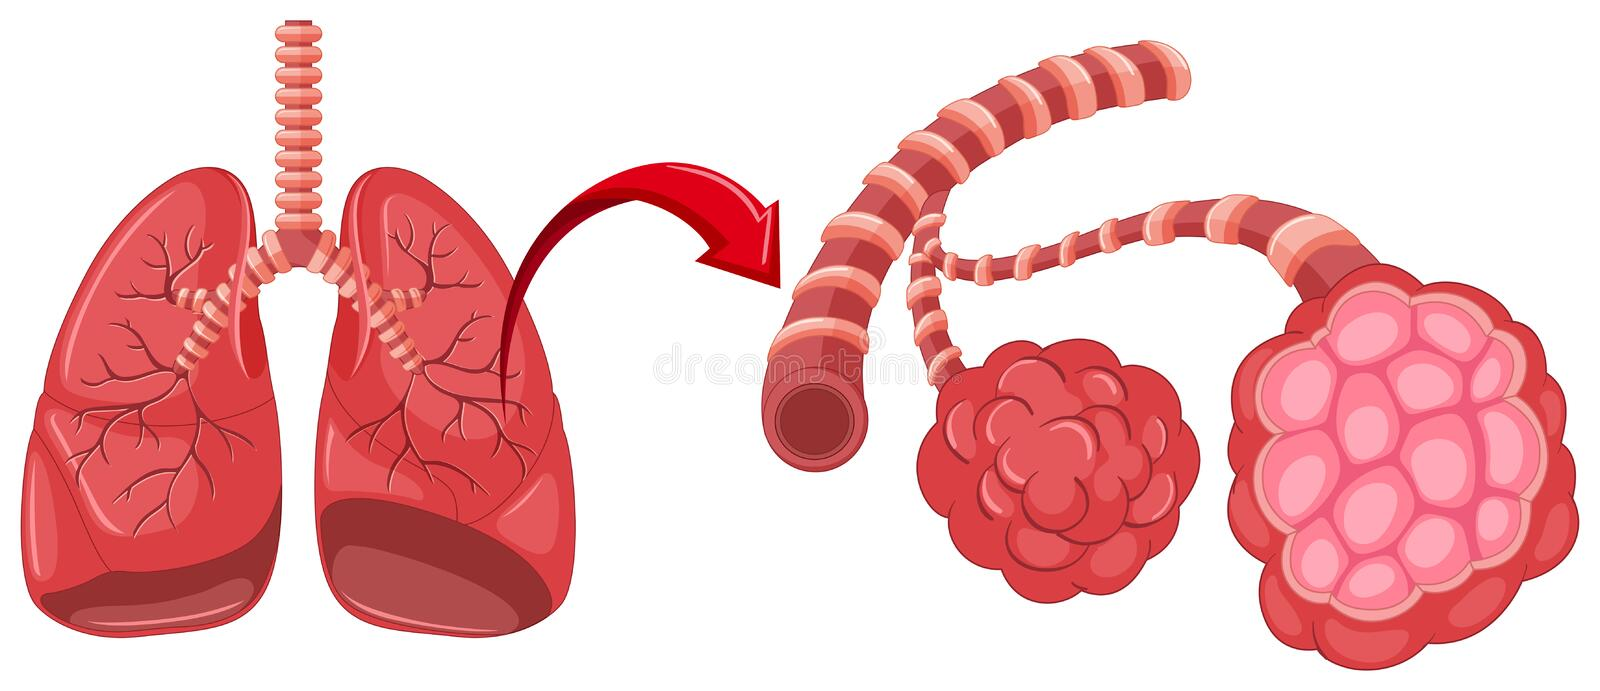 Pneumonia diagram with zoom in lungs. Illustration stock illustration